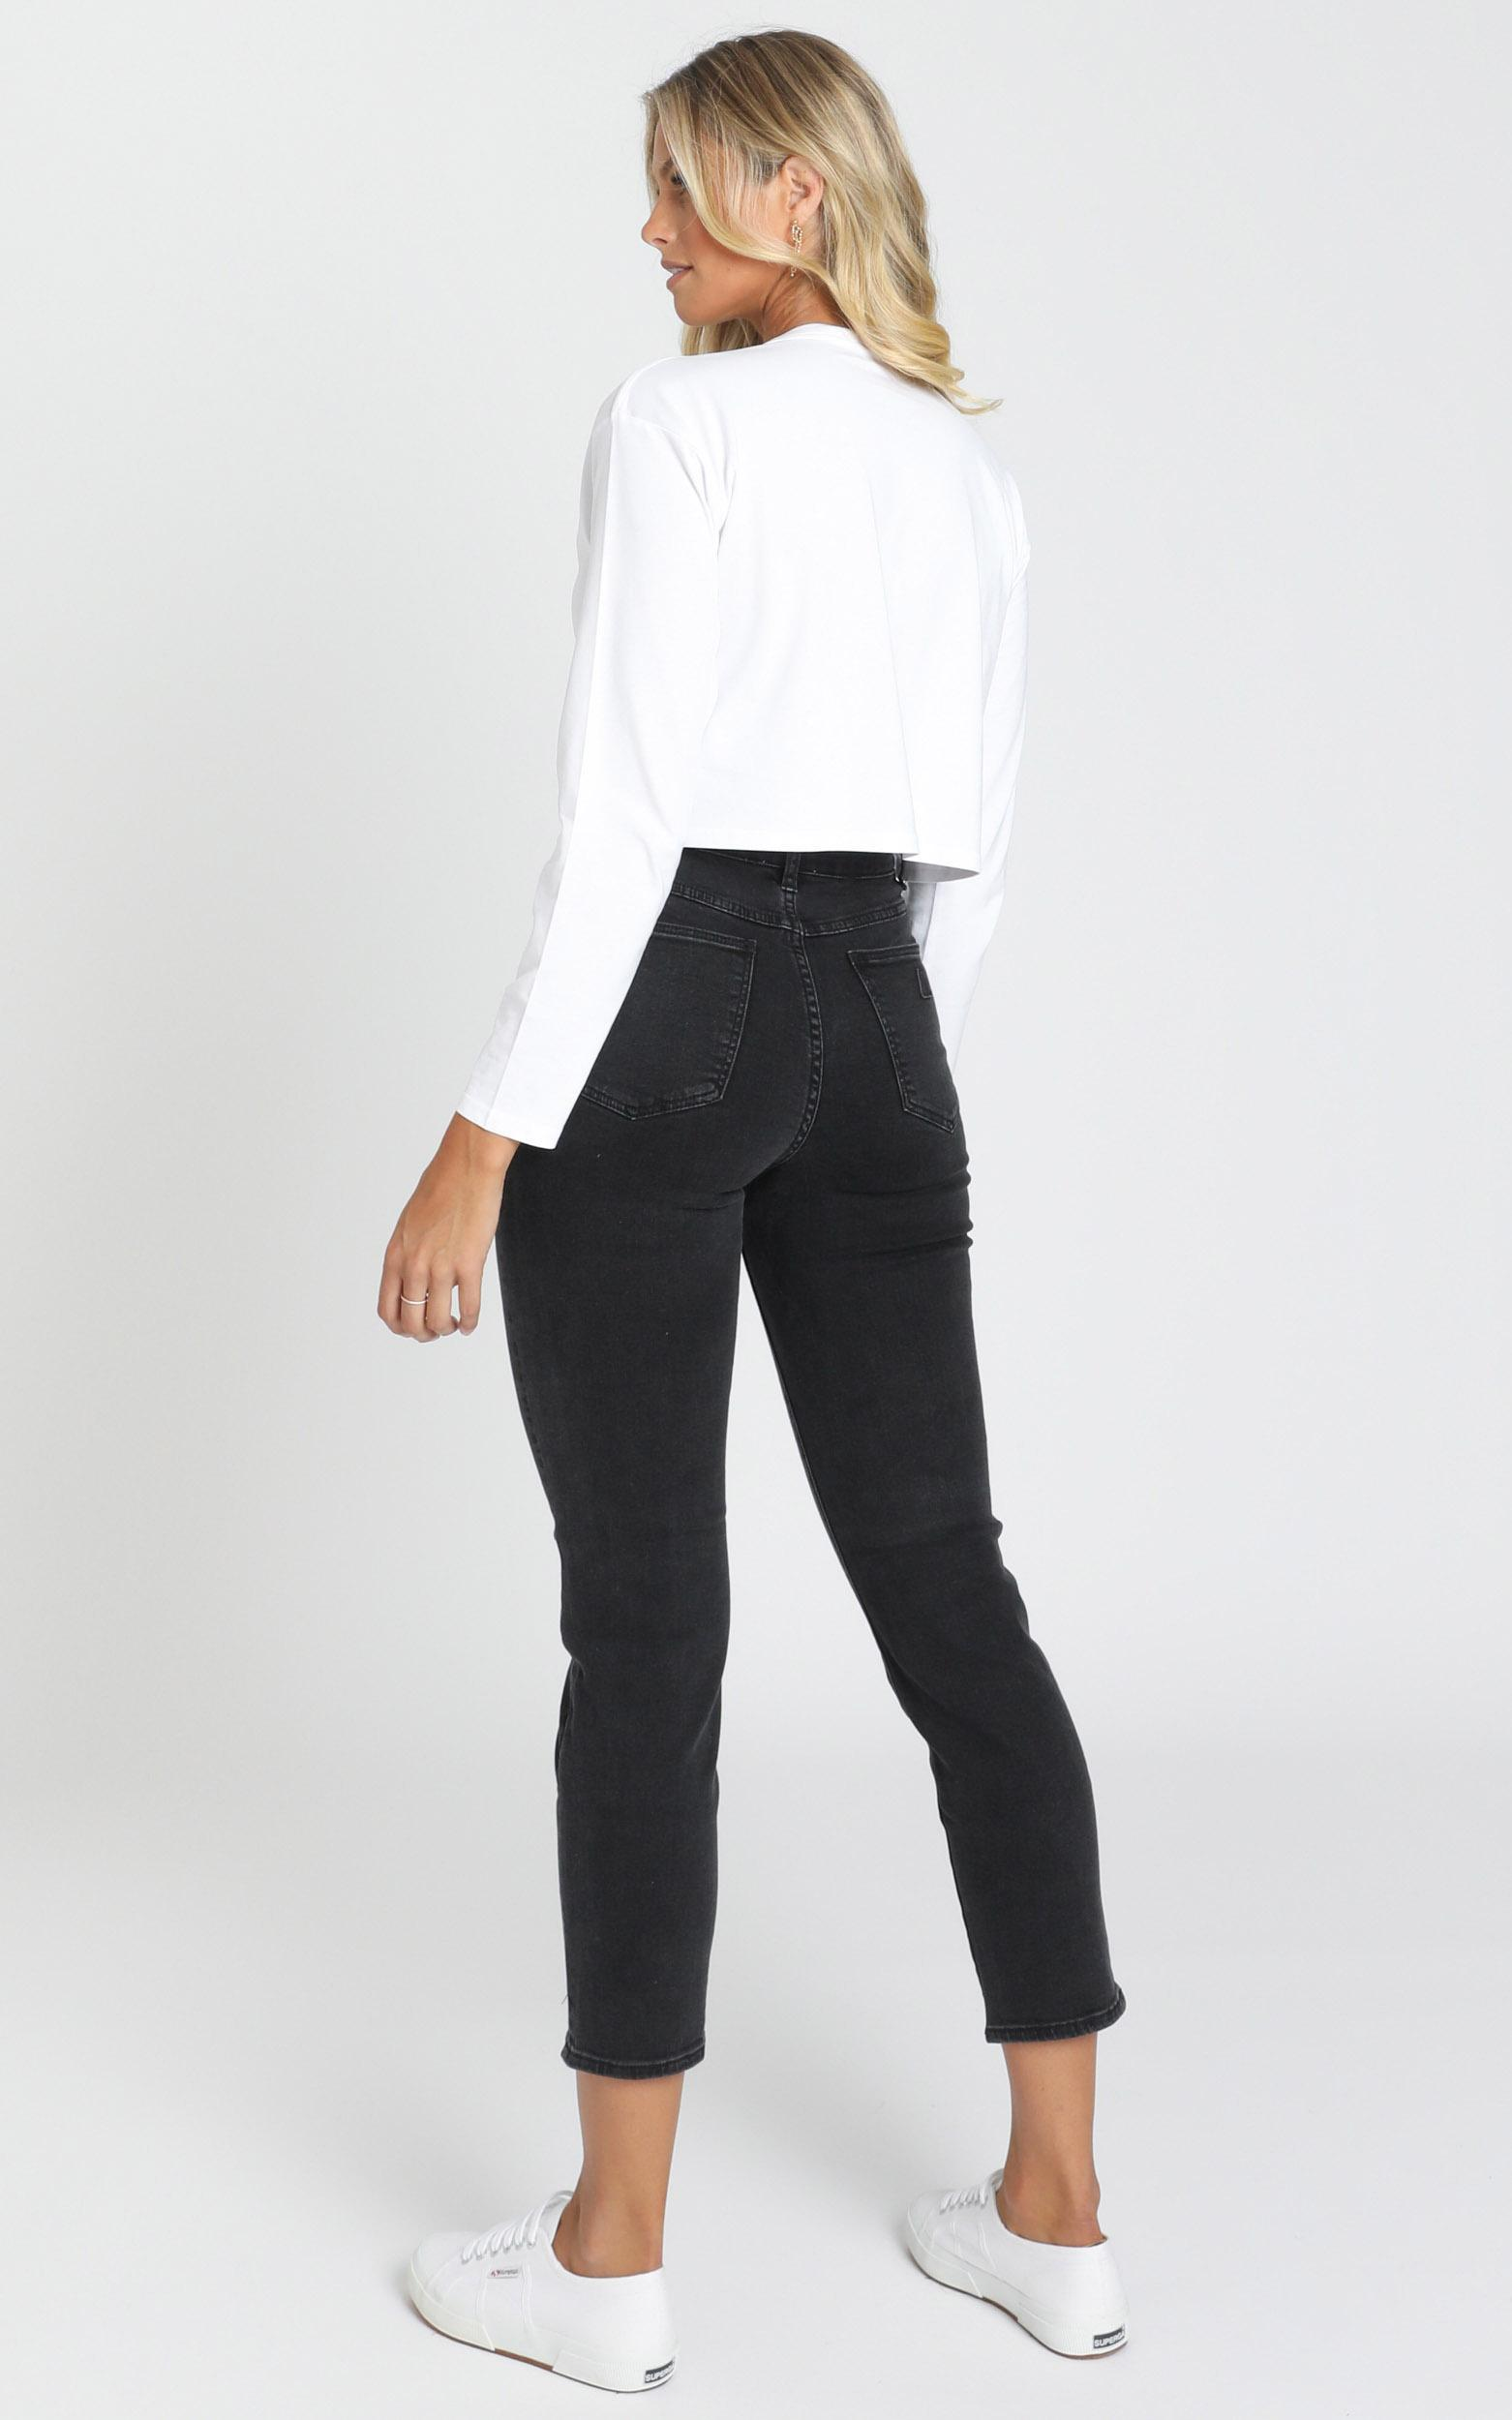 Abrand - A '94 High Slim Jeans in 90210 black - 6 (XS), Black, hi-res image number null